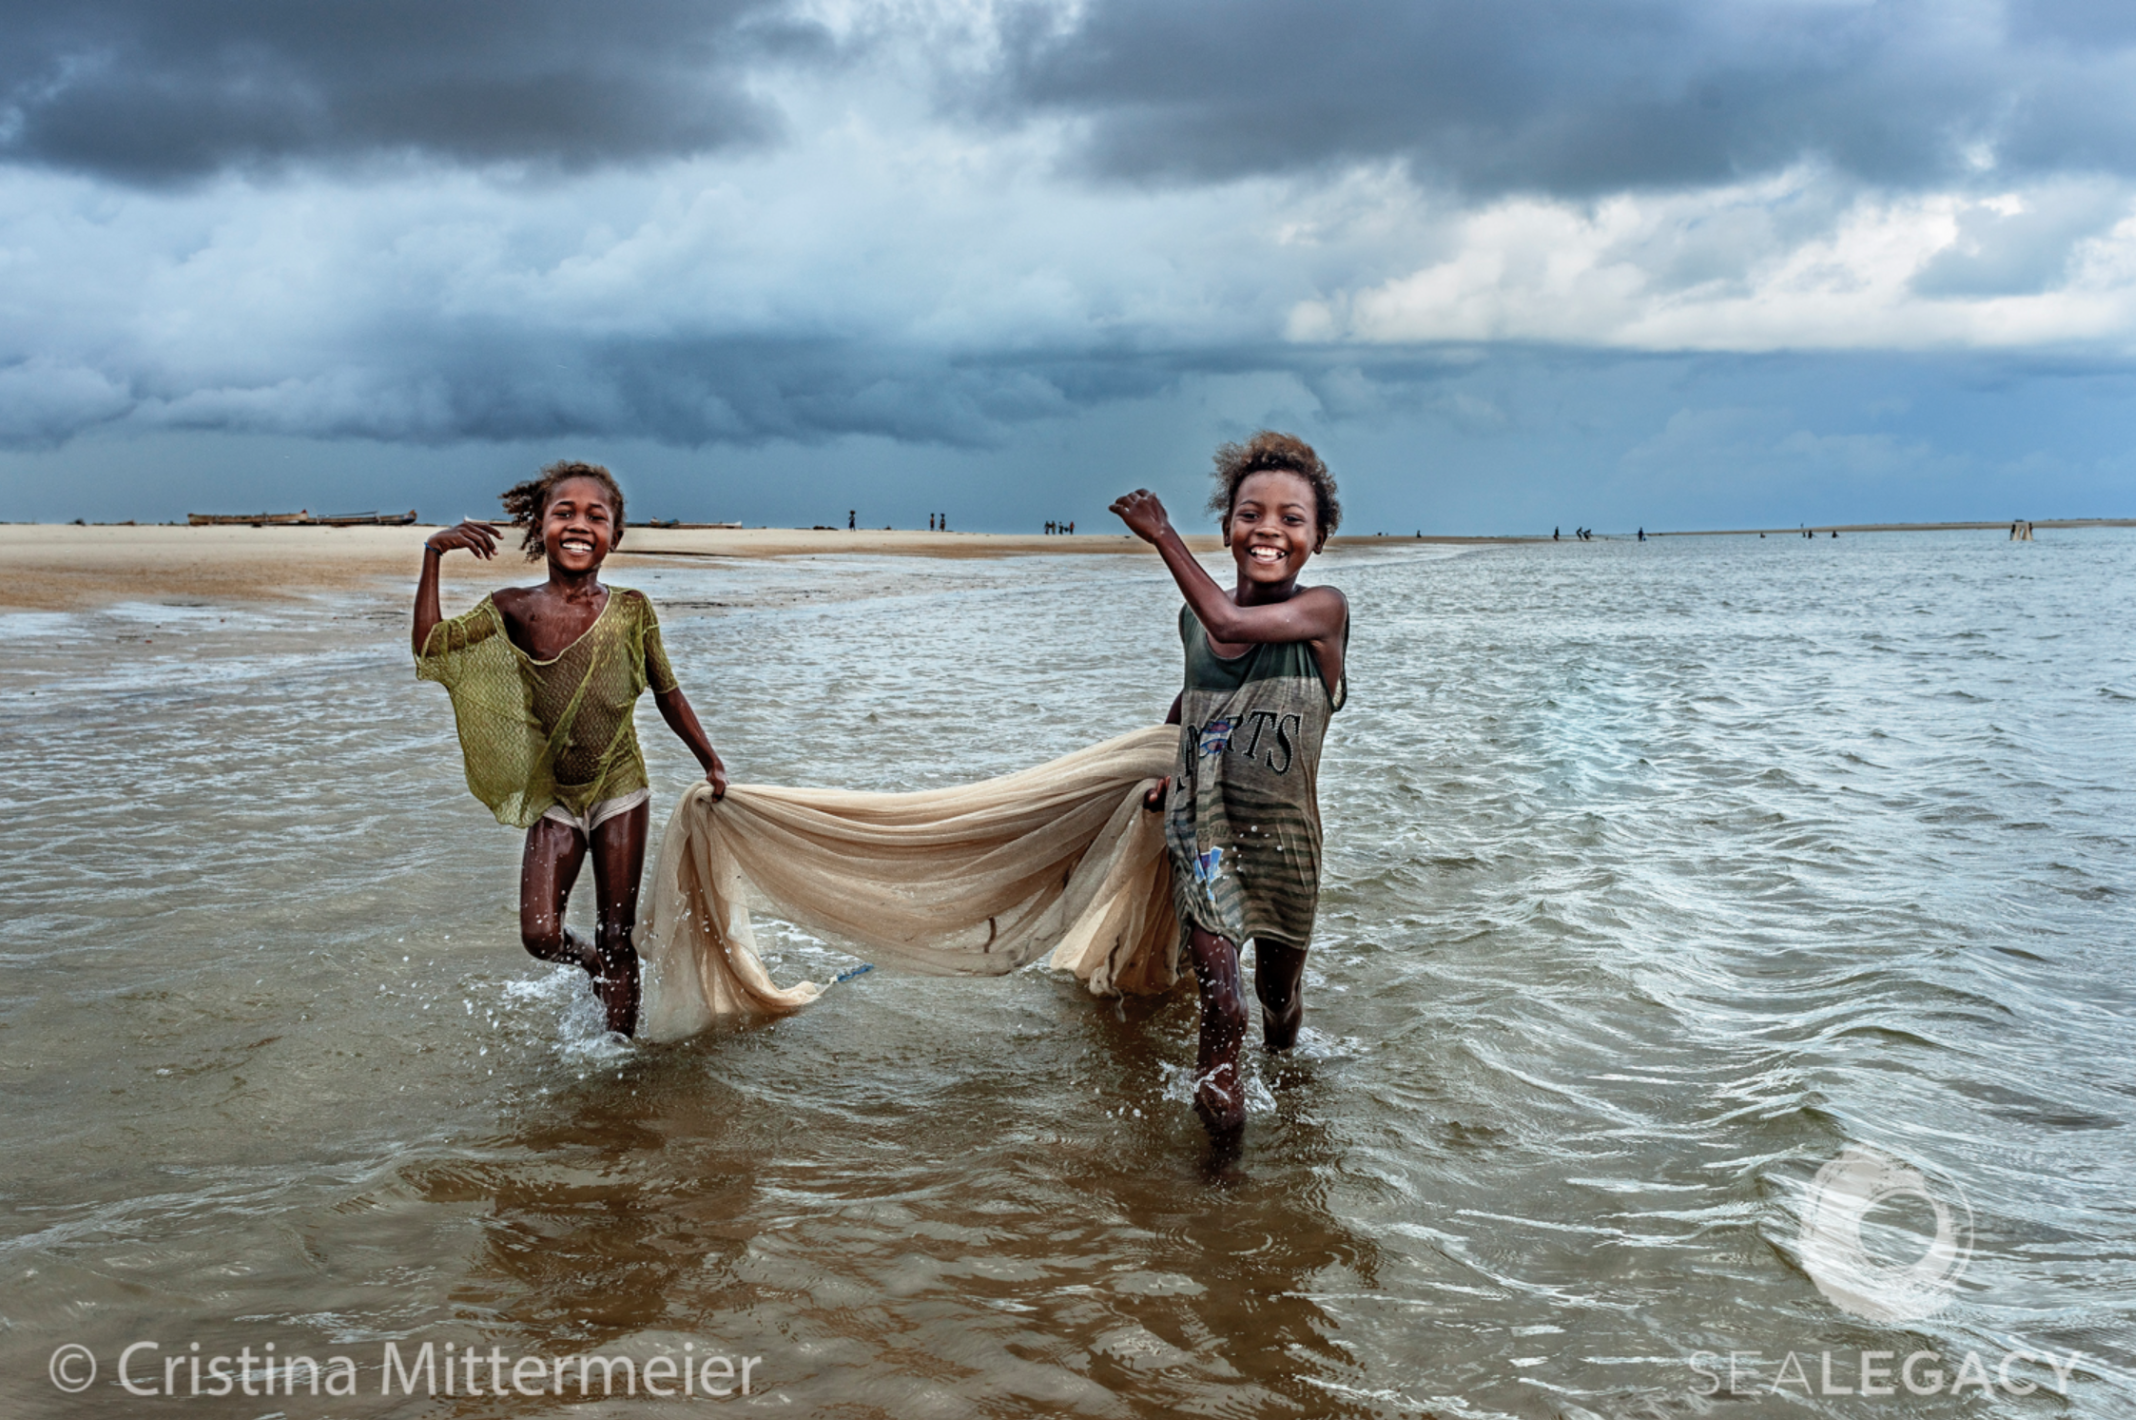 Cristina Mittermeier, Fishing Girls  Dye Sublimation Print on Metal, 40x60 in.